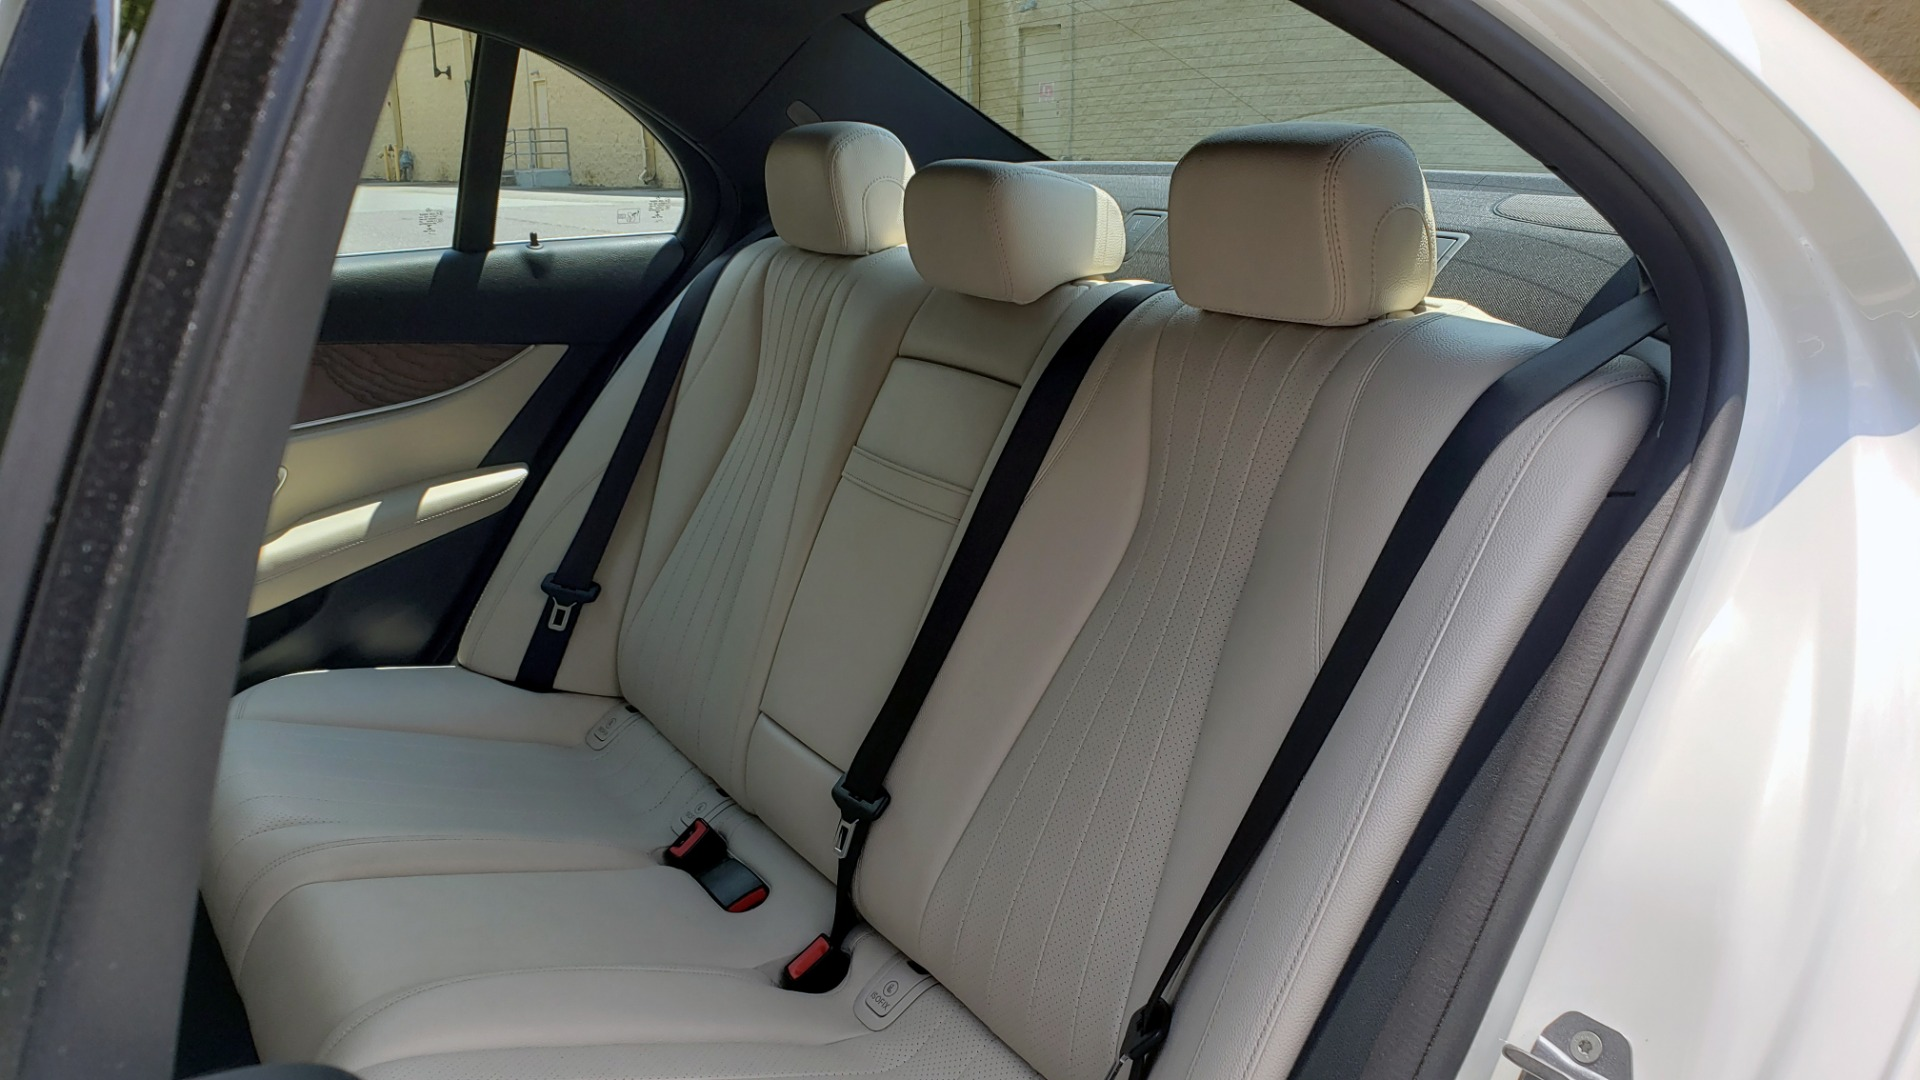 Used 2017 Mercedes-Benz E-CLASS E 300 PREMIUM / SPORT / NAV / SUNROOF / HTD STS / BSM / REARVIEW for sale $27,995 at Formula Imports in Charlotte NC 28227 60